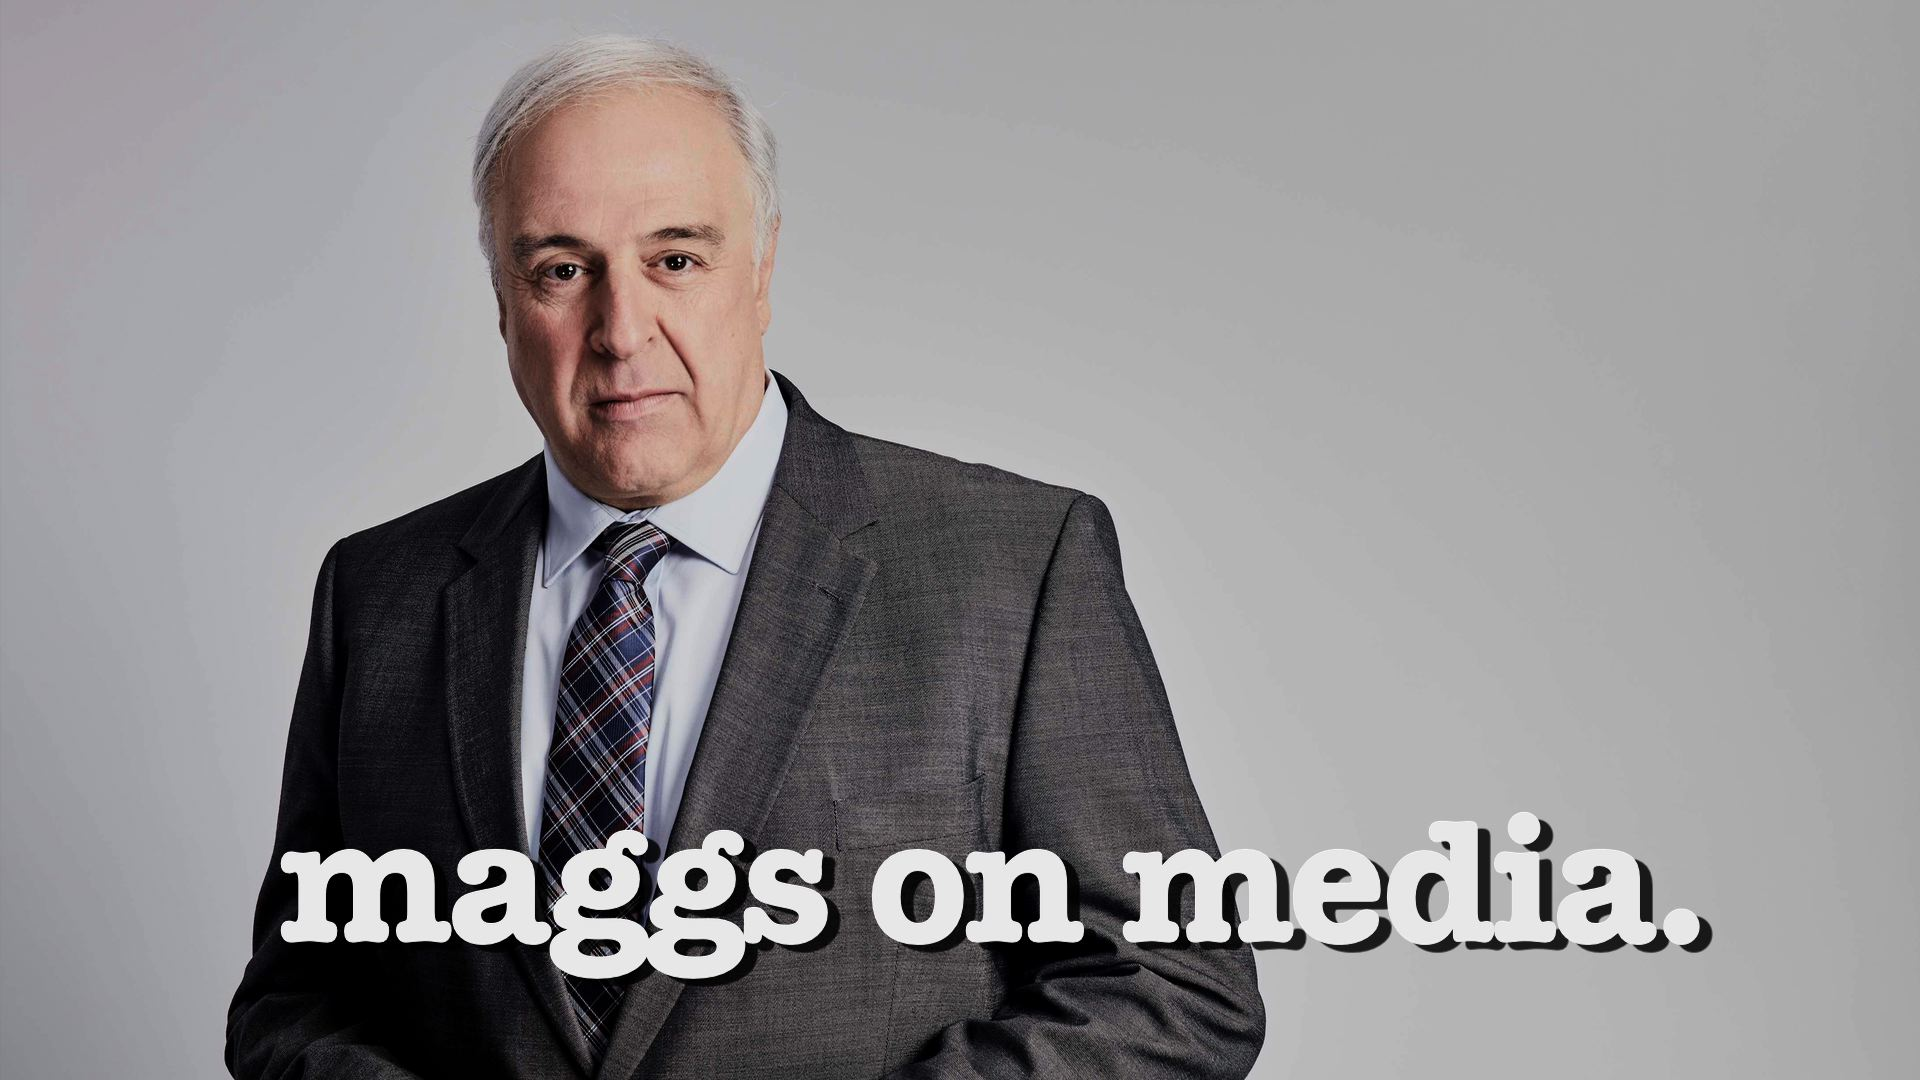 Maggs on Media is a powerful digest of media issues and topical advertising